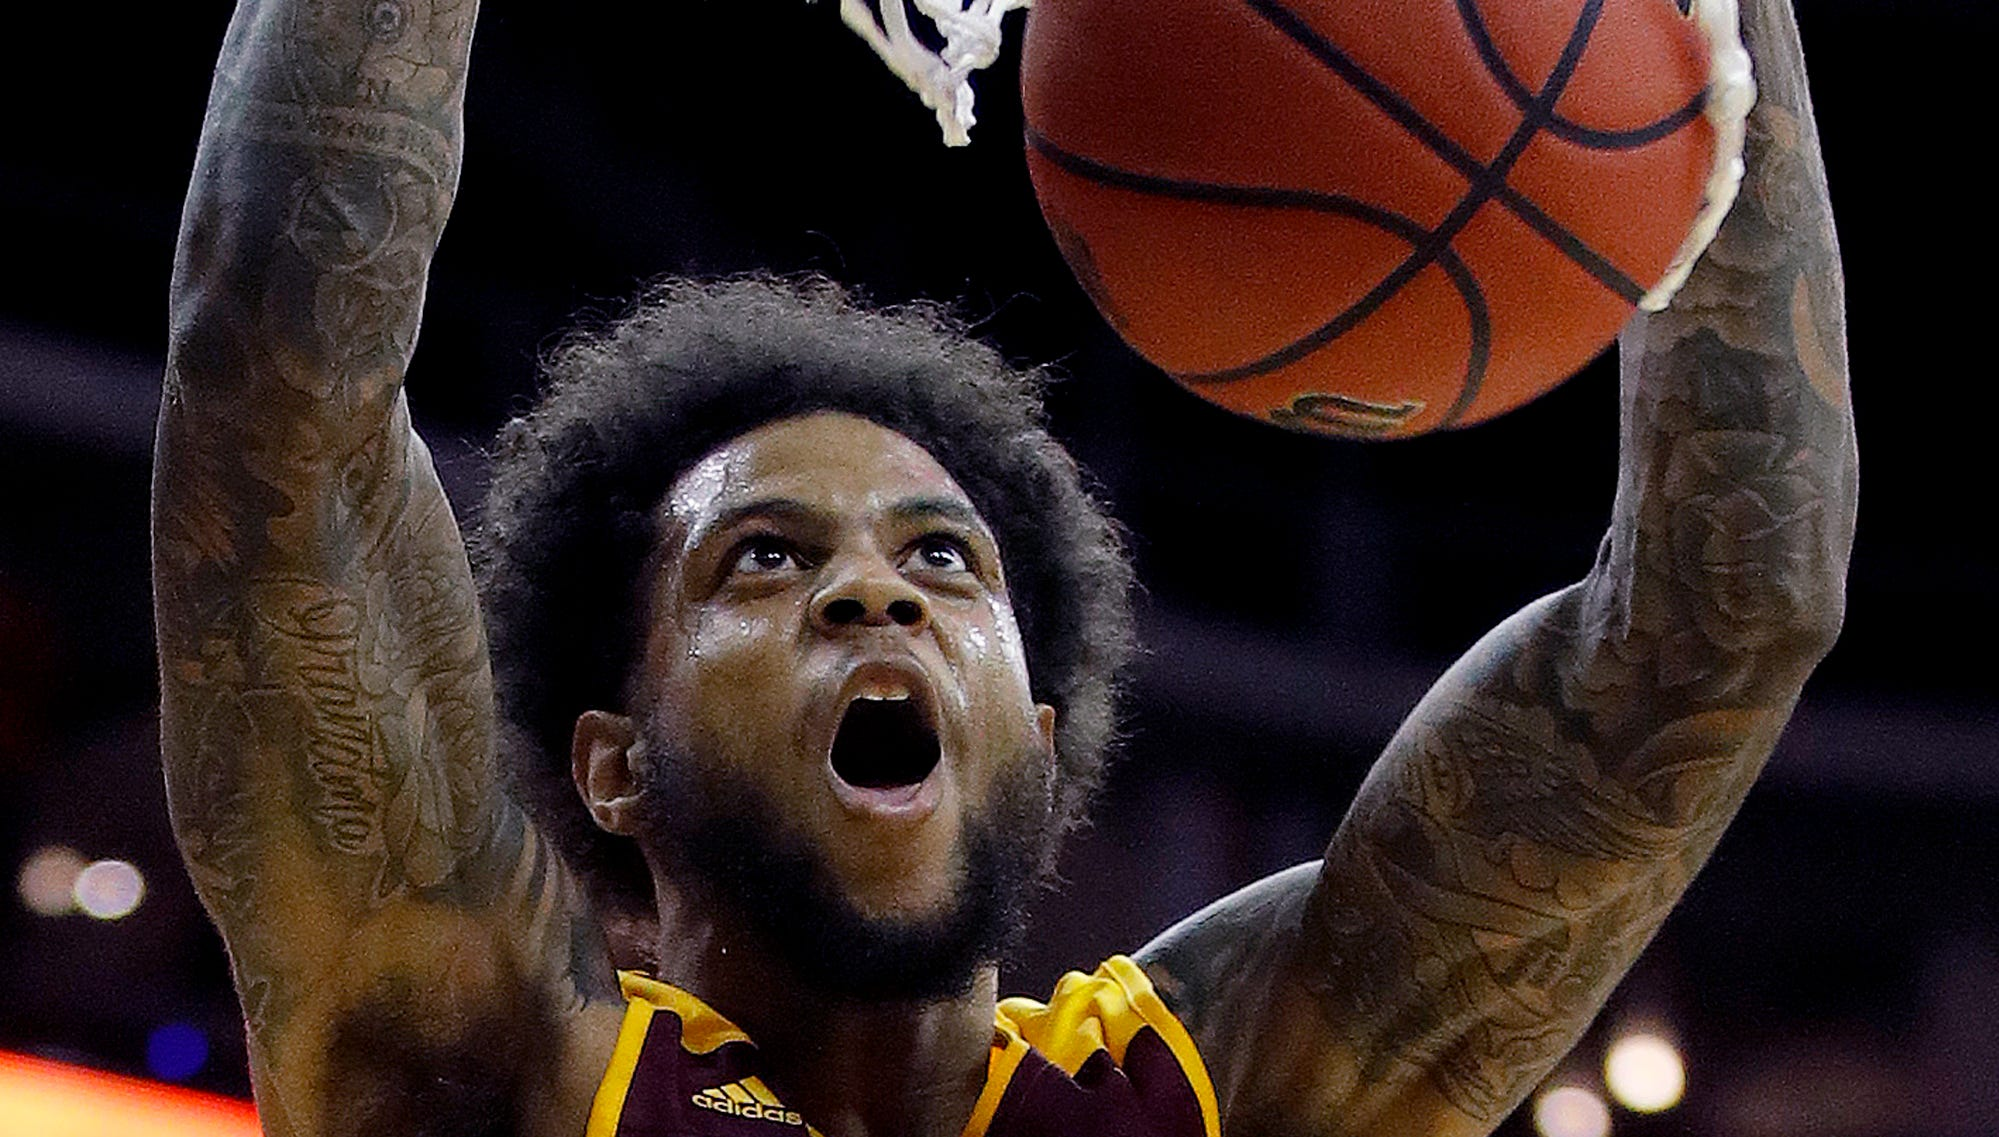 Missouri State's Obediah Church dunks during the second half of an NCAA college basketball game against Nebraska, Monday, Nov. 19, 2018, in Kansas City, Mo. (AP Photo/Charlie Riedel)